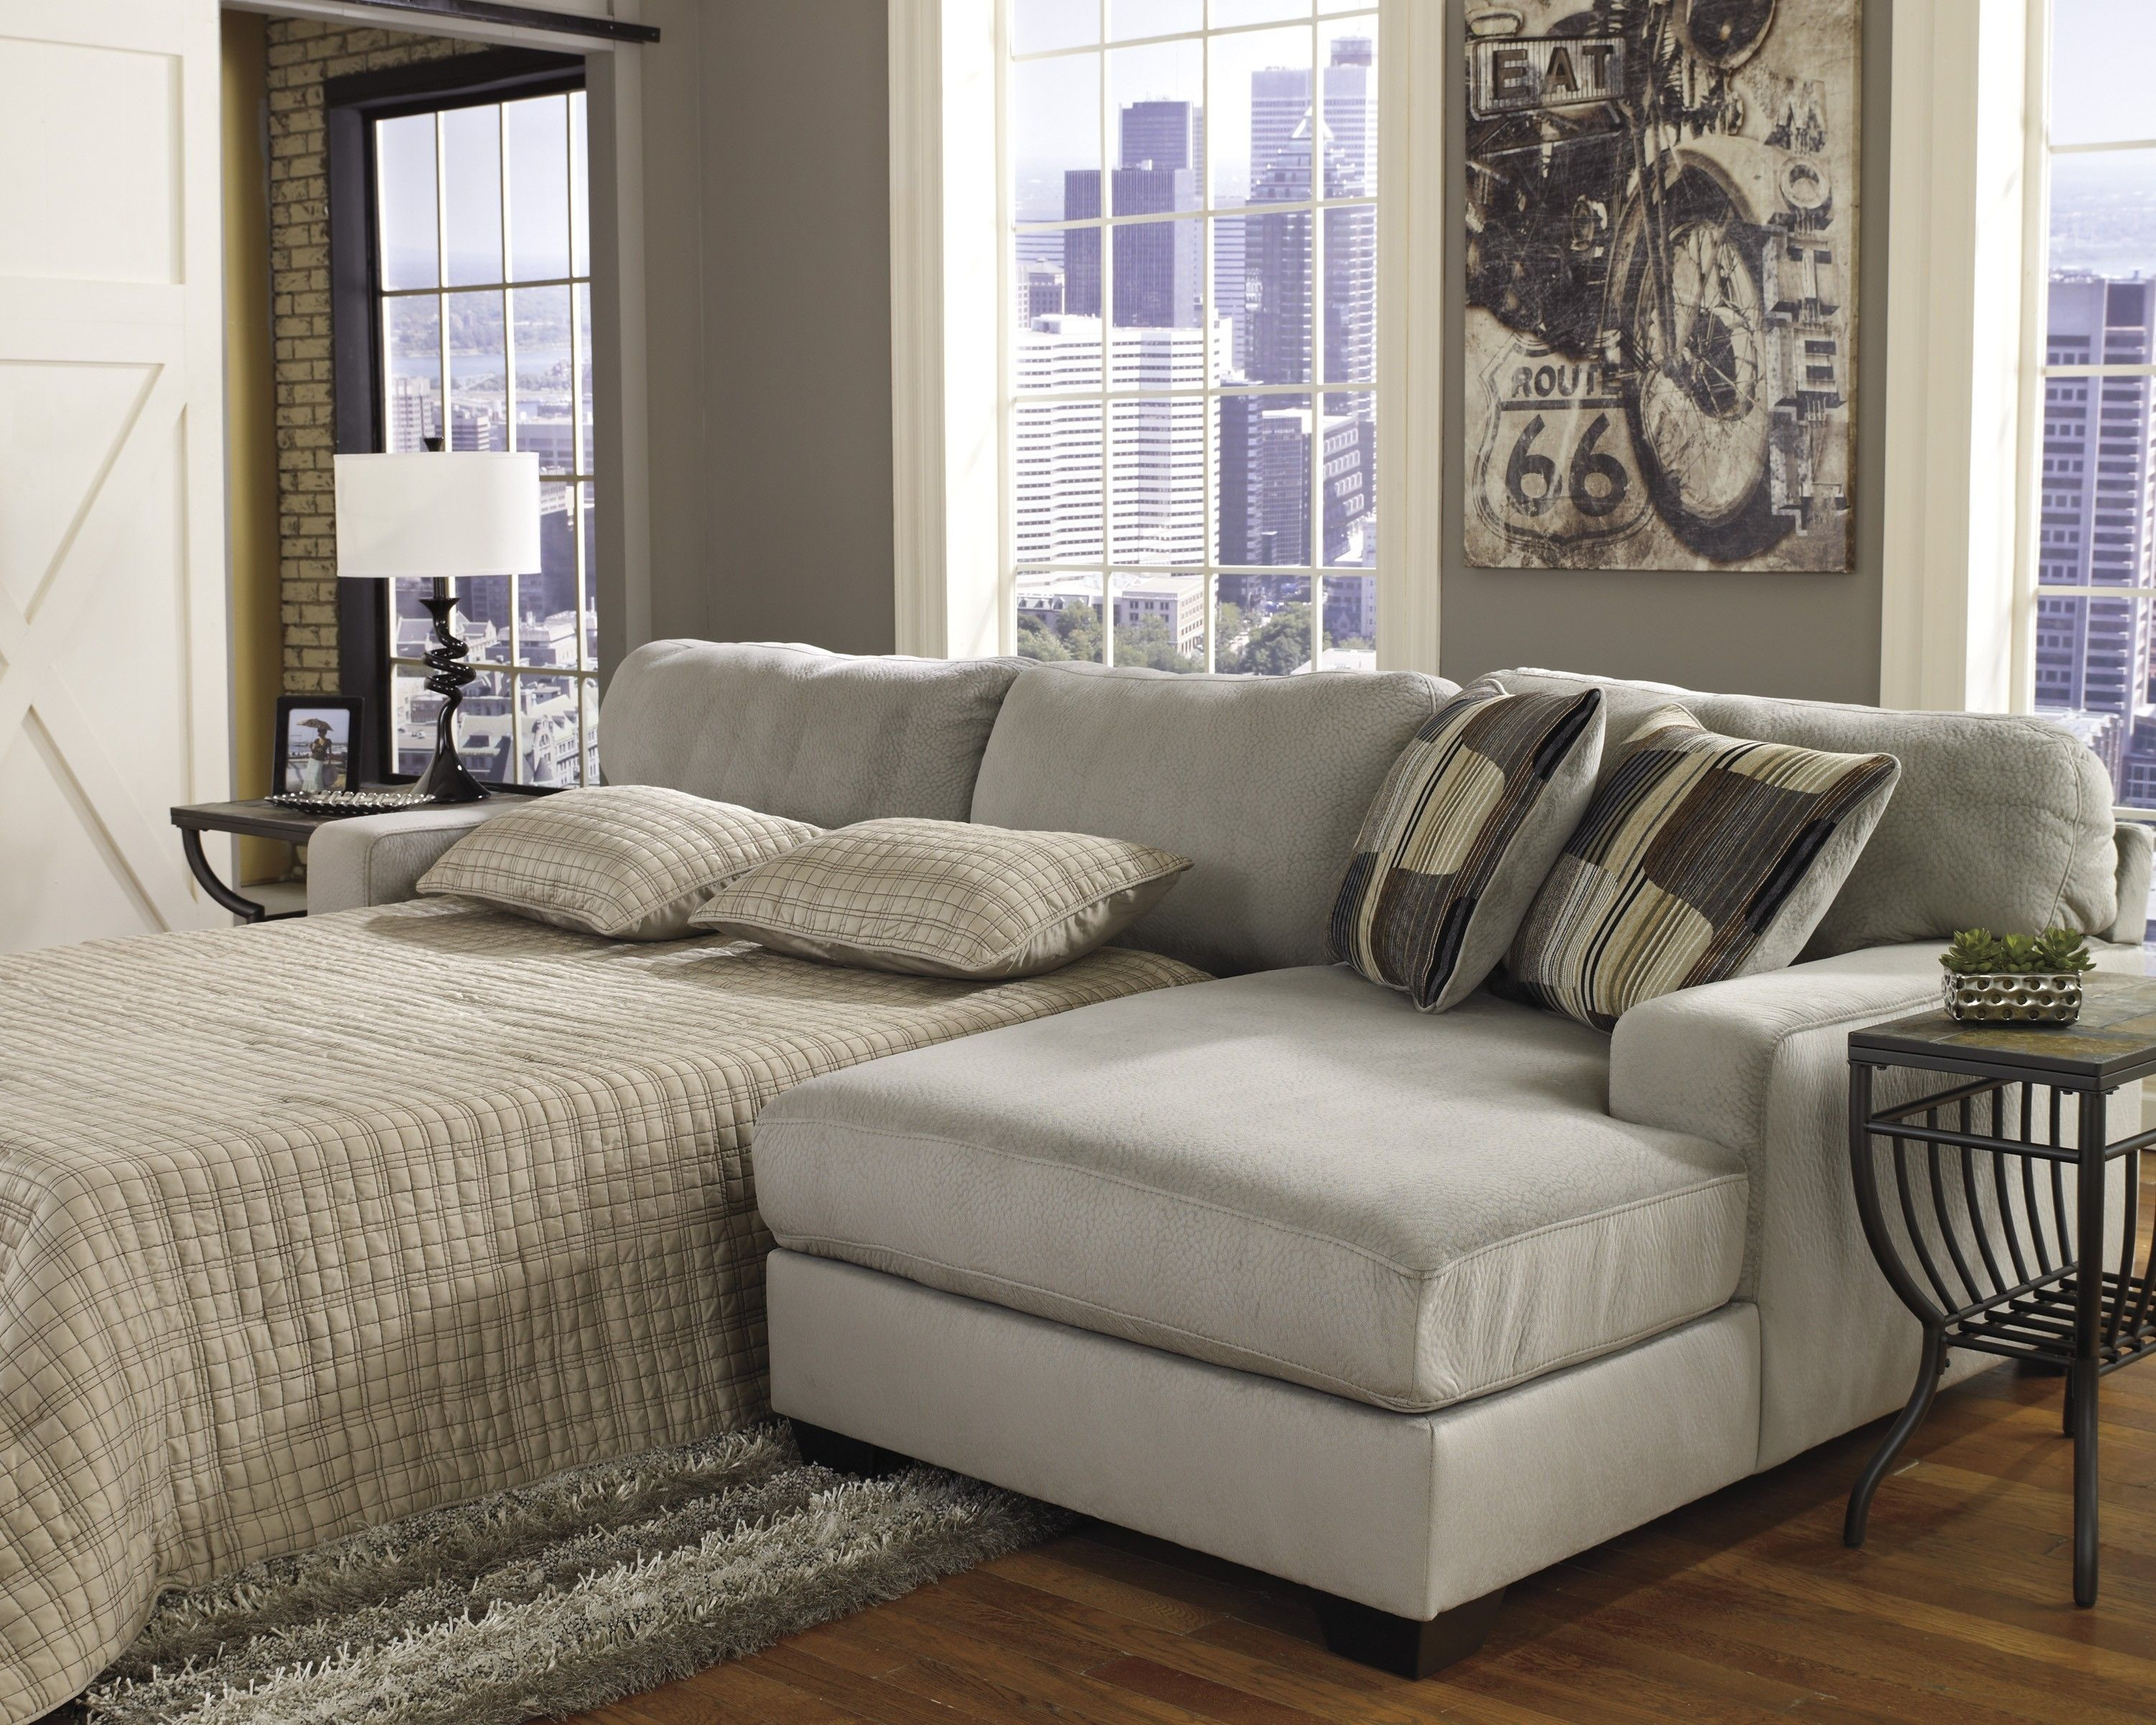 Sectional Sofa With Queen Size Sleeper